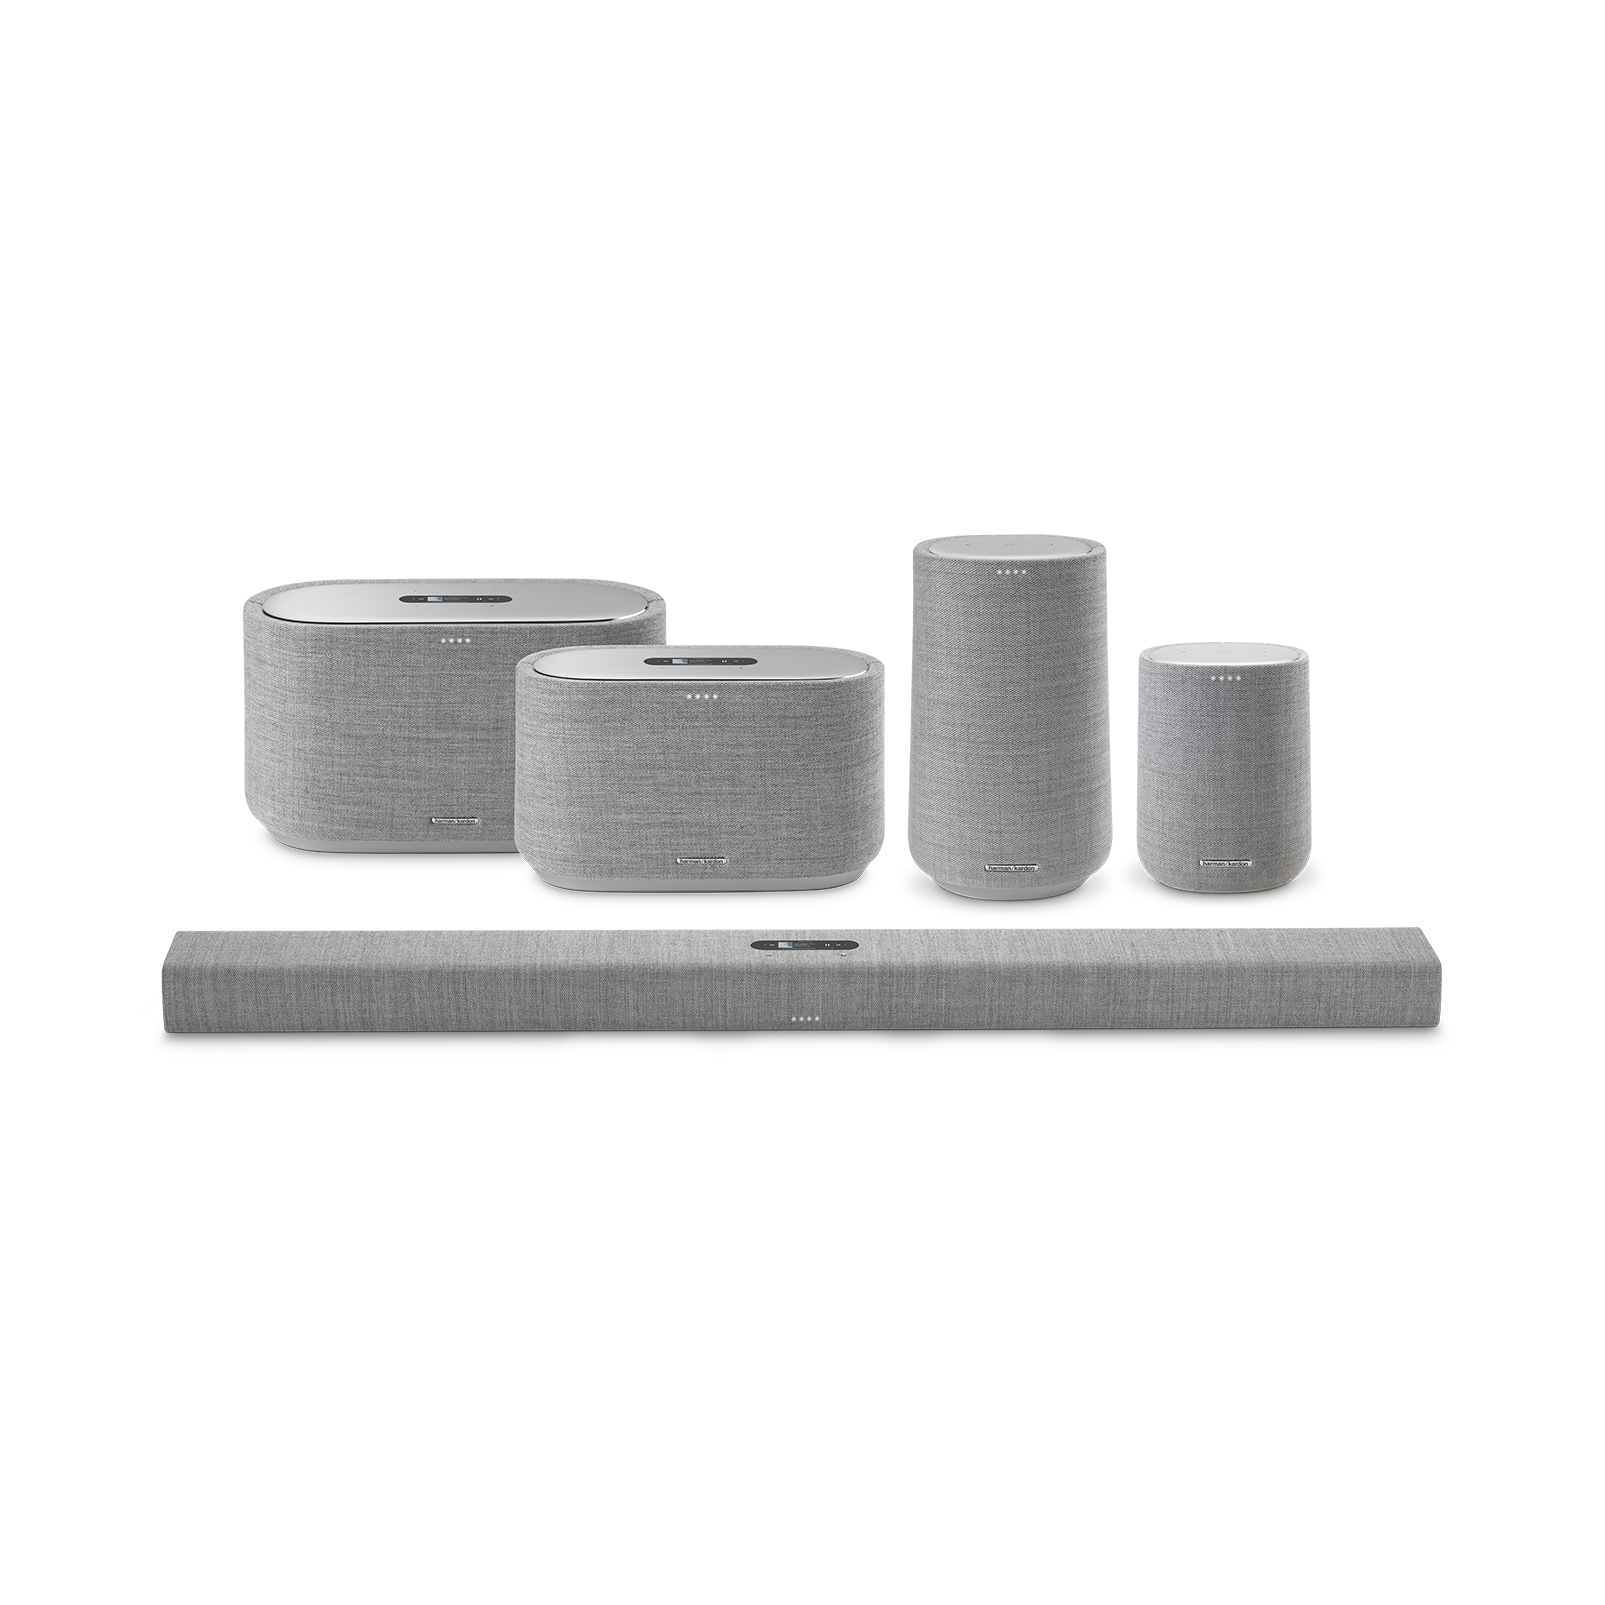 Harman Kardon Citation 100 MKII - Grey - Bring rich wireless sound to any space with the smart and compact Harman Kardon Citation 100 mkII. Its innovative features include AirPlay, Chromecast built-in and the Google Assistant. - Detailshot 5